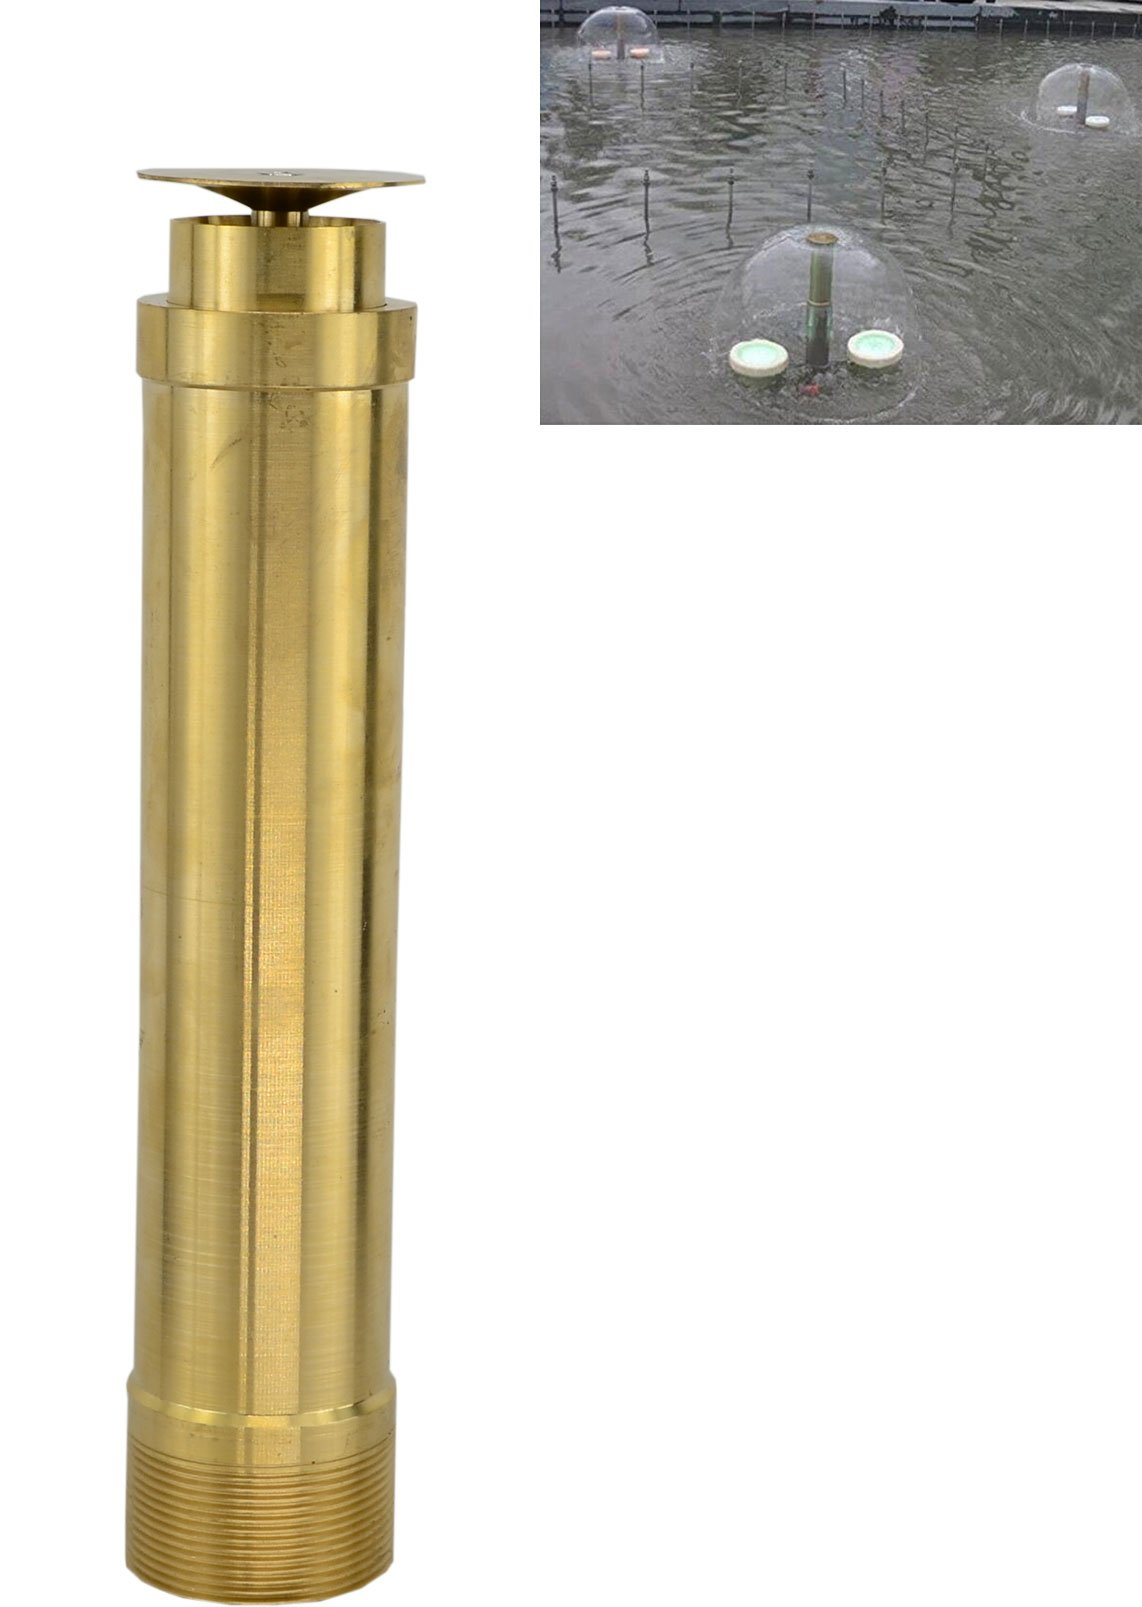 Brass Column Garden Square Fireworks Pool Pond Adjustable Fountain Nozzle Sprinkler Spray Head SSH330 (1-1/2 Inch)